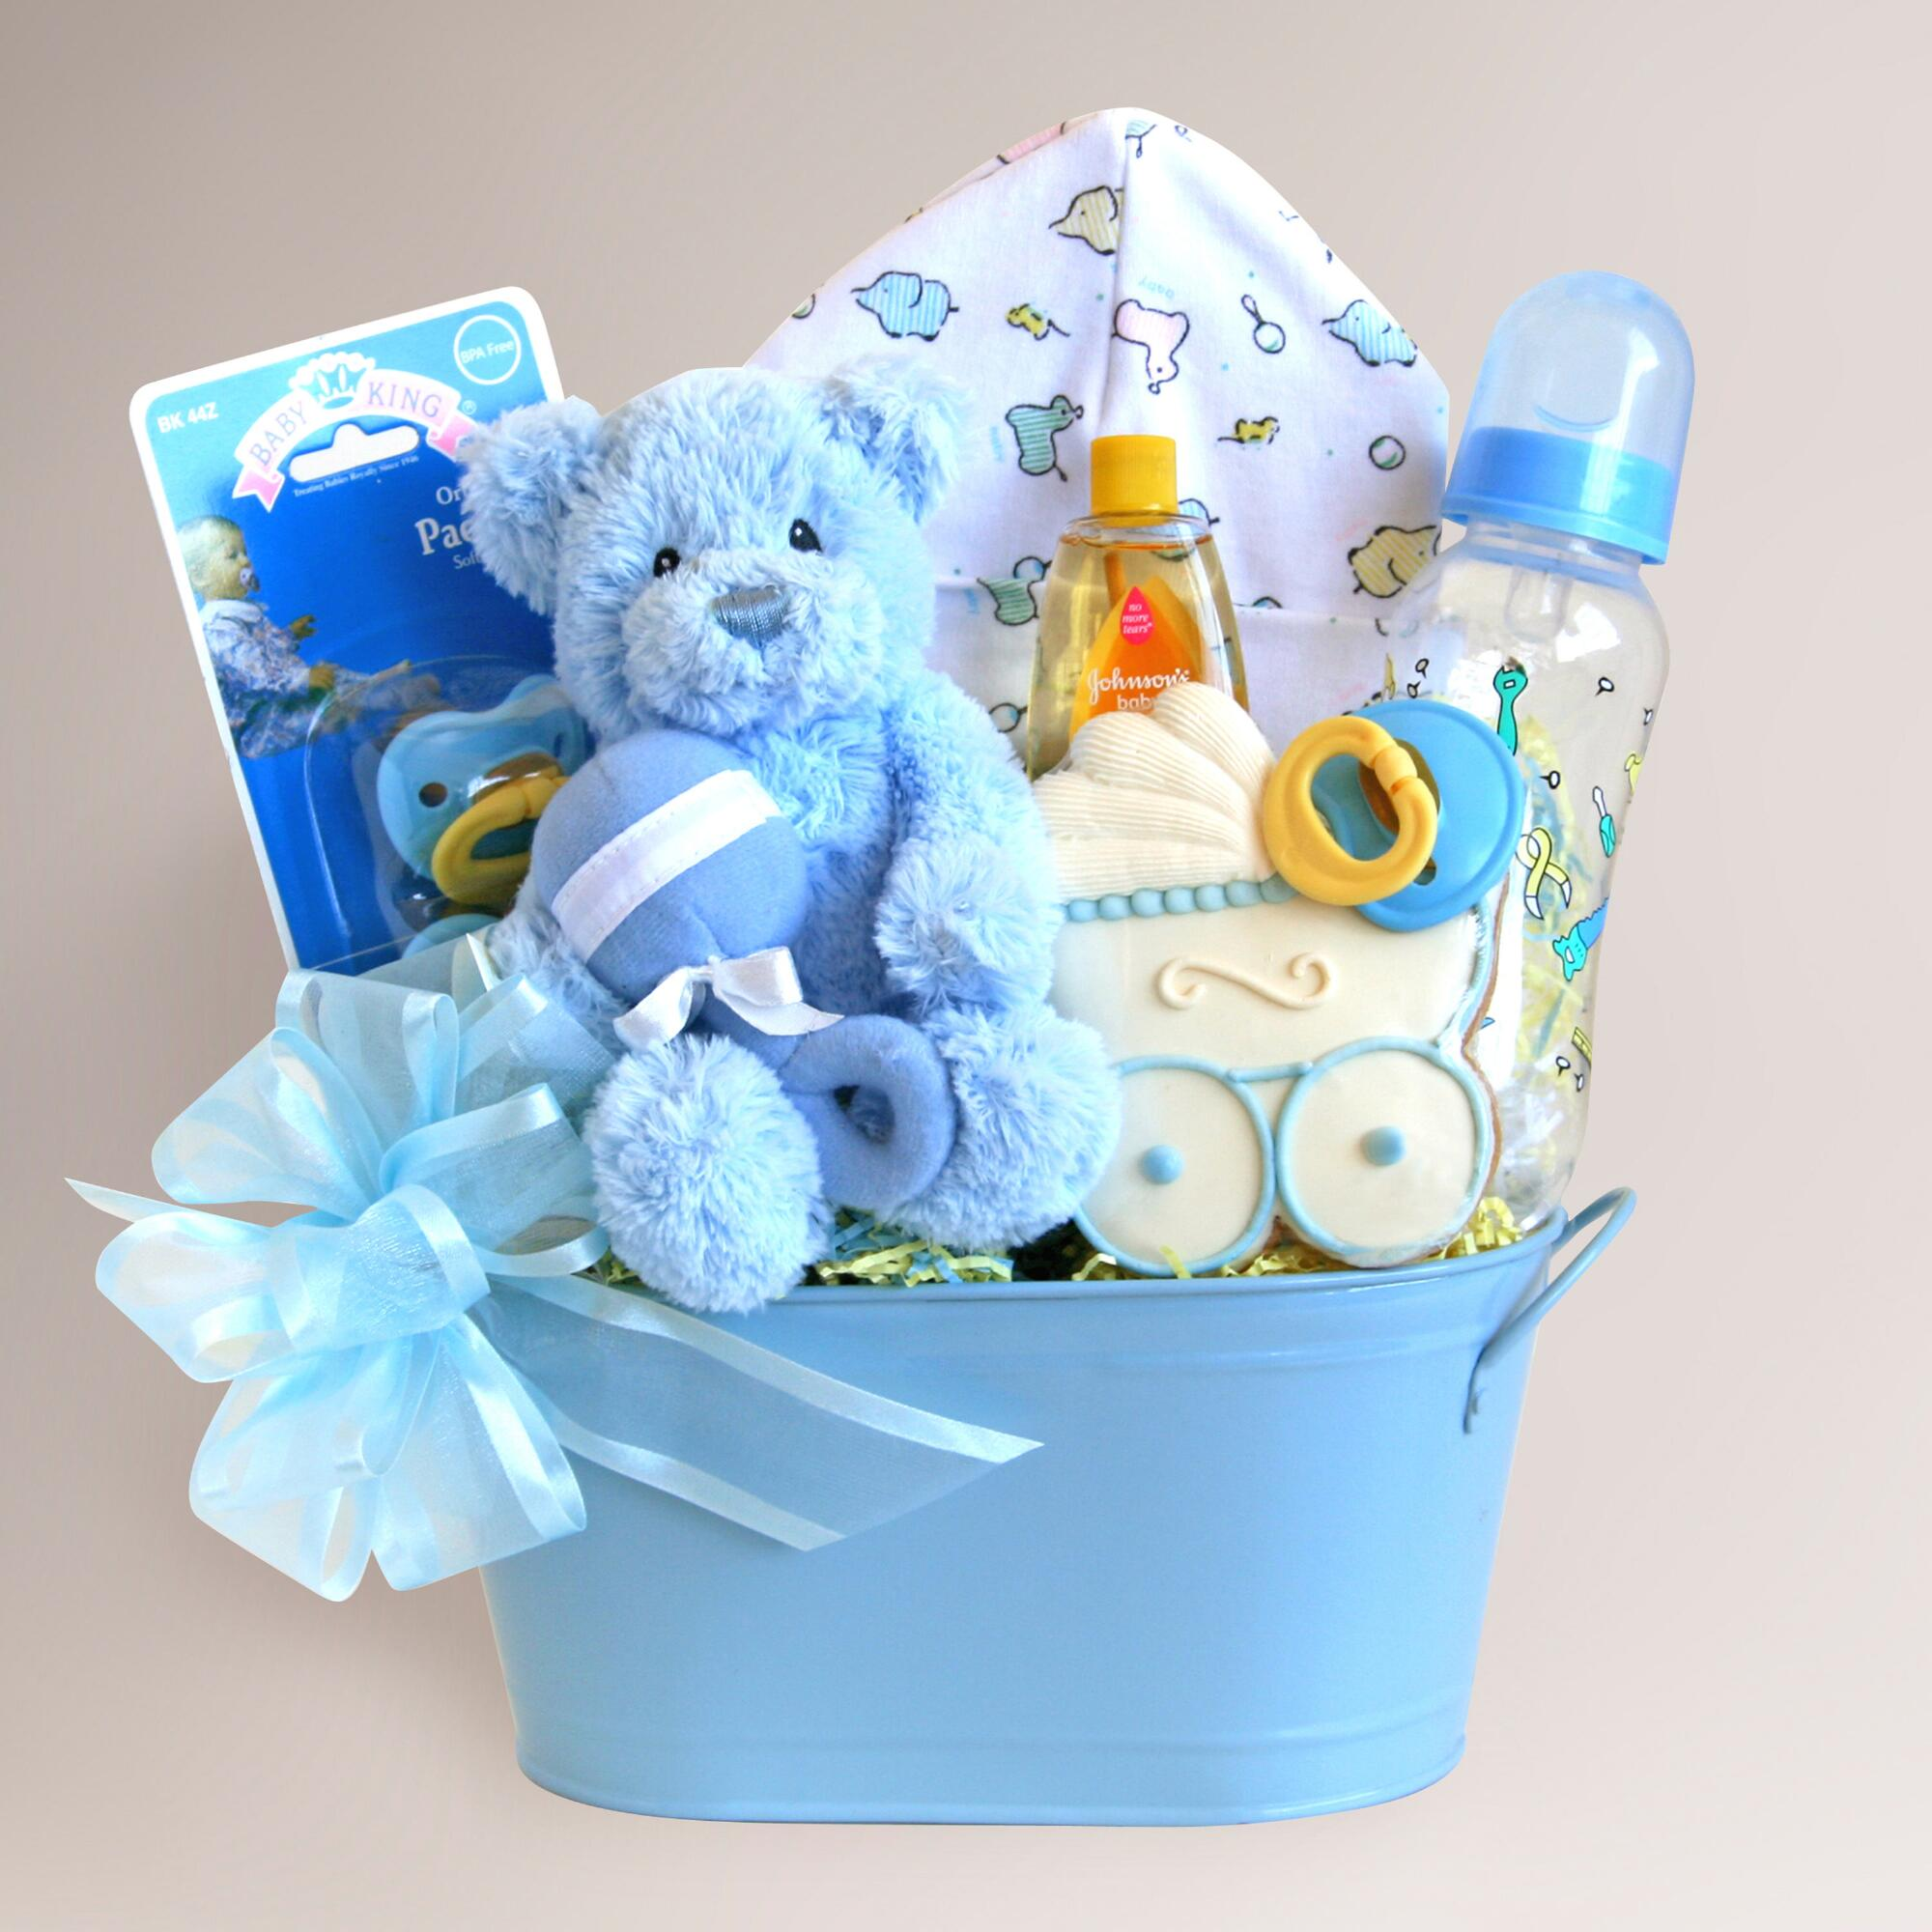 Baby boy gifts m&s : Cuddly welcome for baby boy gift basket world market